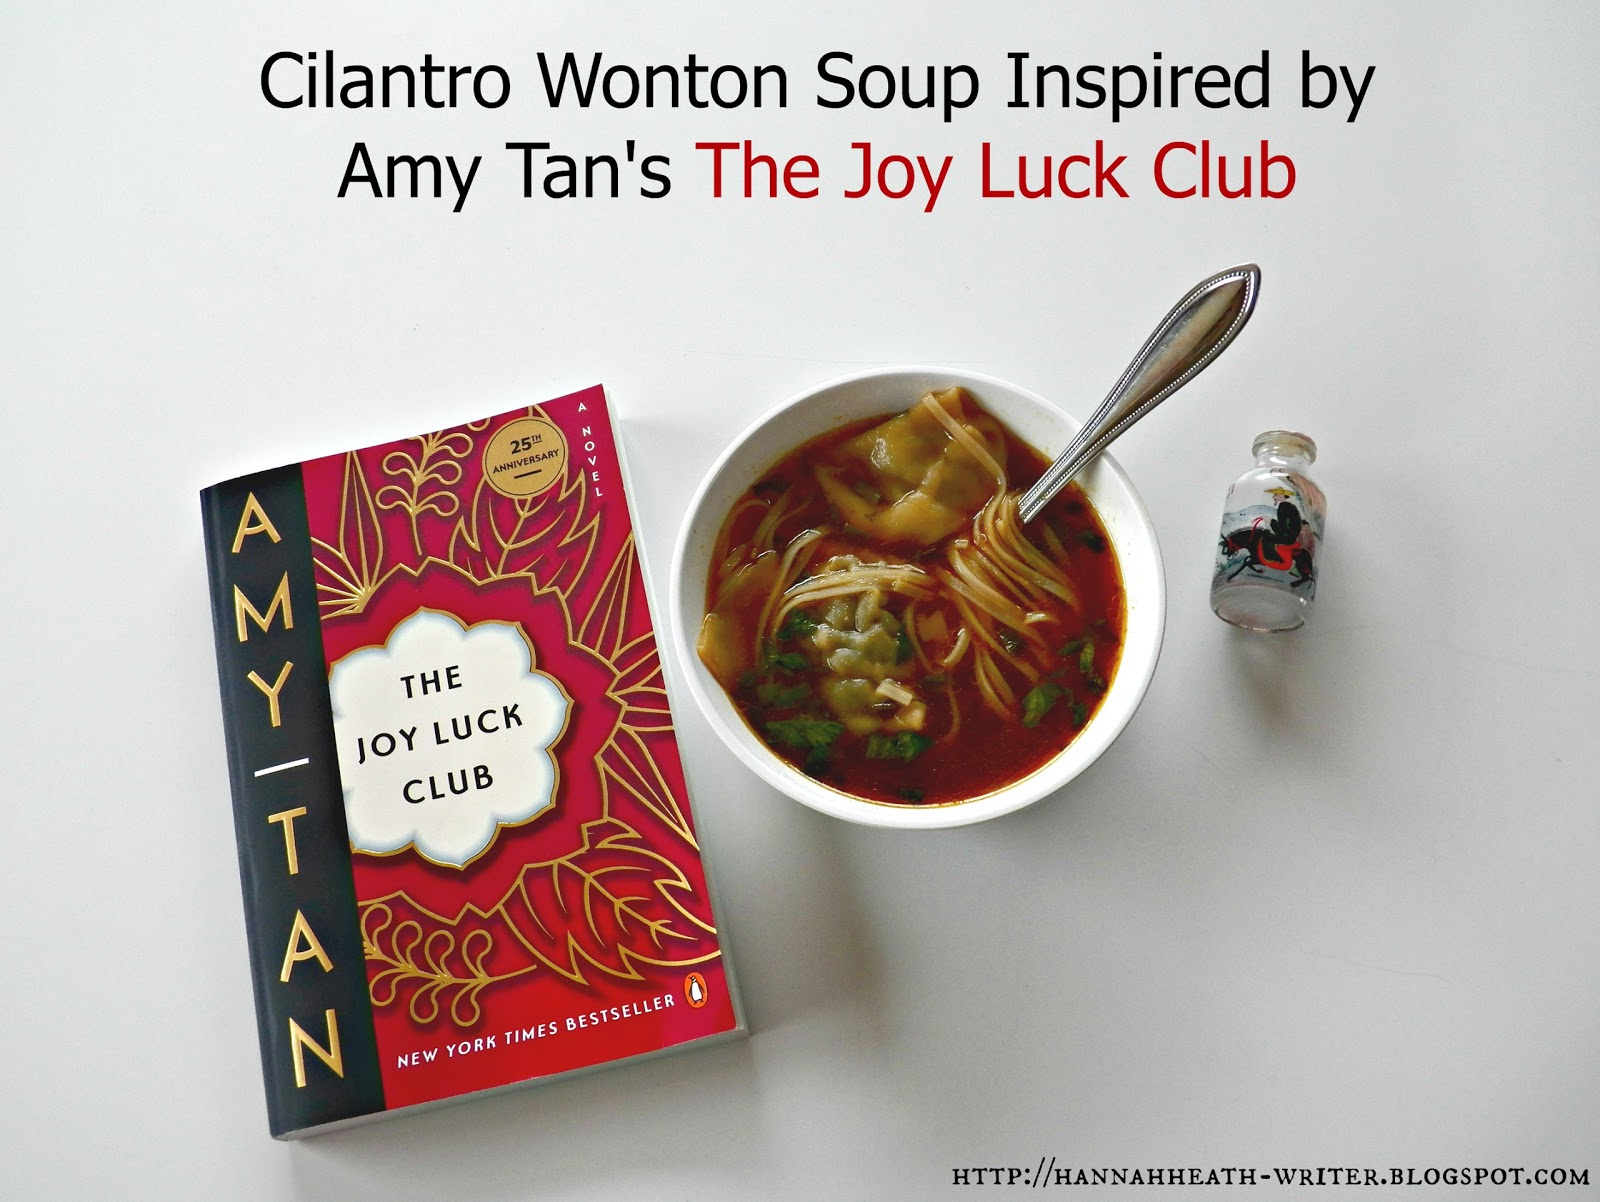 misunderstandings and conflict in the novel the joy luck club by amy tan The joy luck club – review - sample  though many themes and issues pervade tan's novel,  the joy luck club  two kinds by amy tan  logical argument.